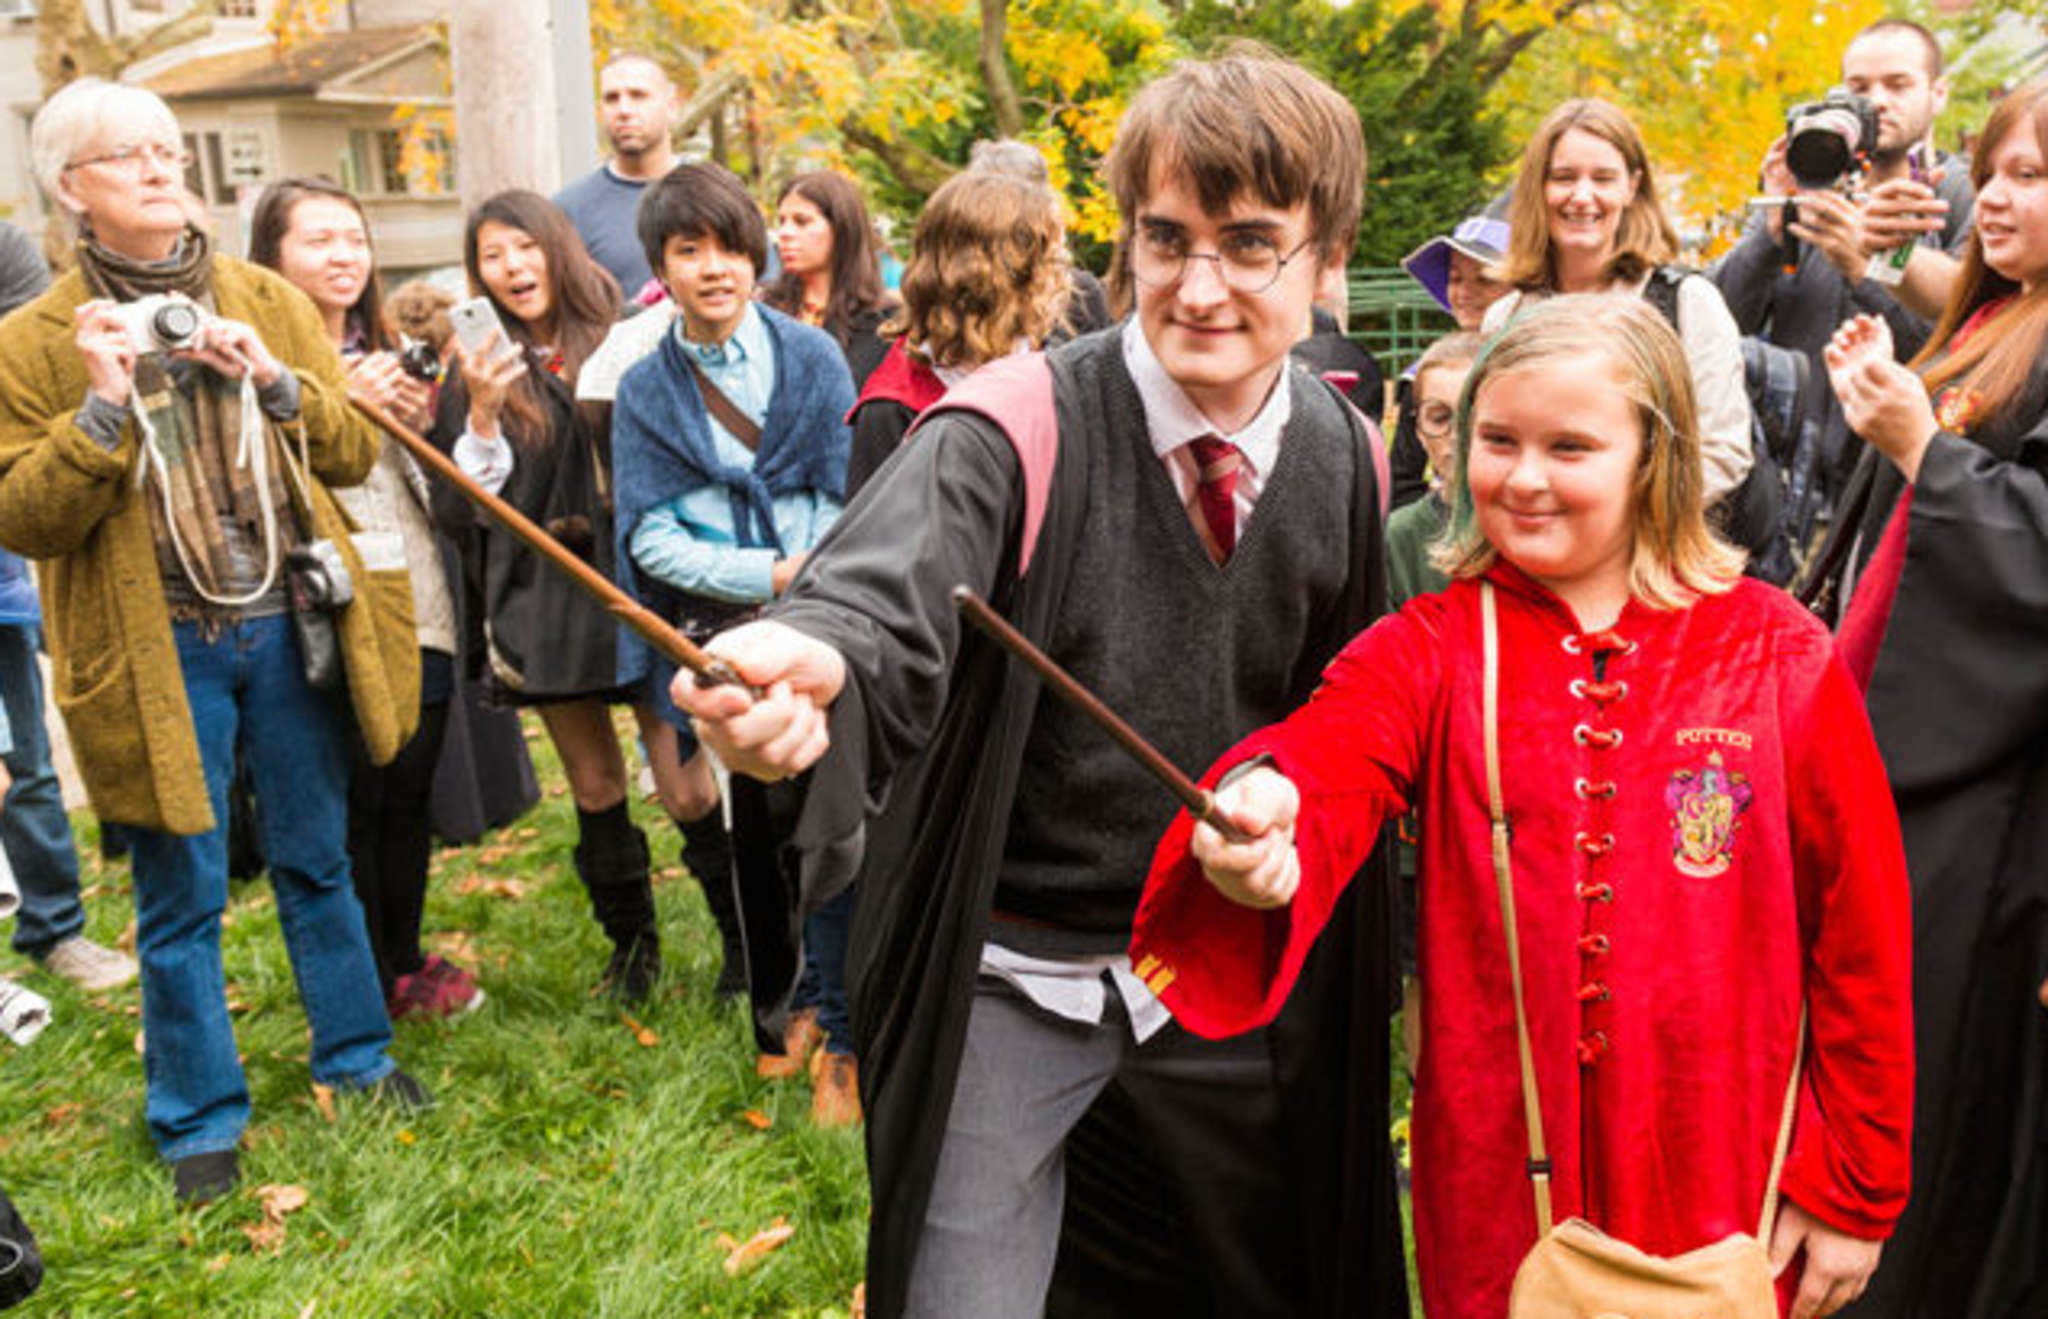 On Friday and Saturday, Chestnut Hill will transform into Hogsmeade, the famed magical town of shops from J.K. Rowling's best-selling series